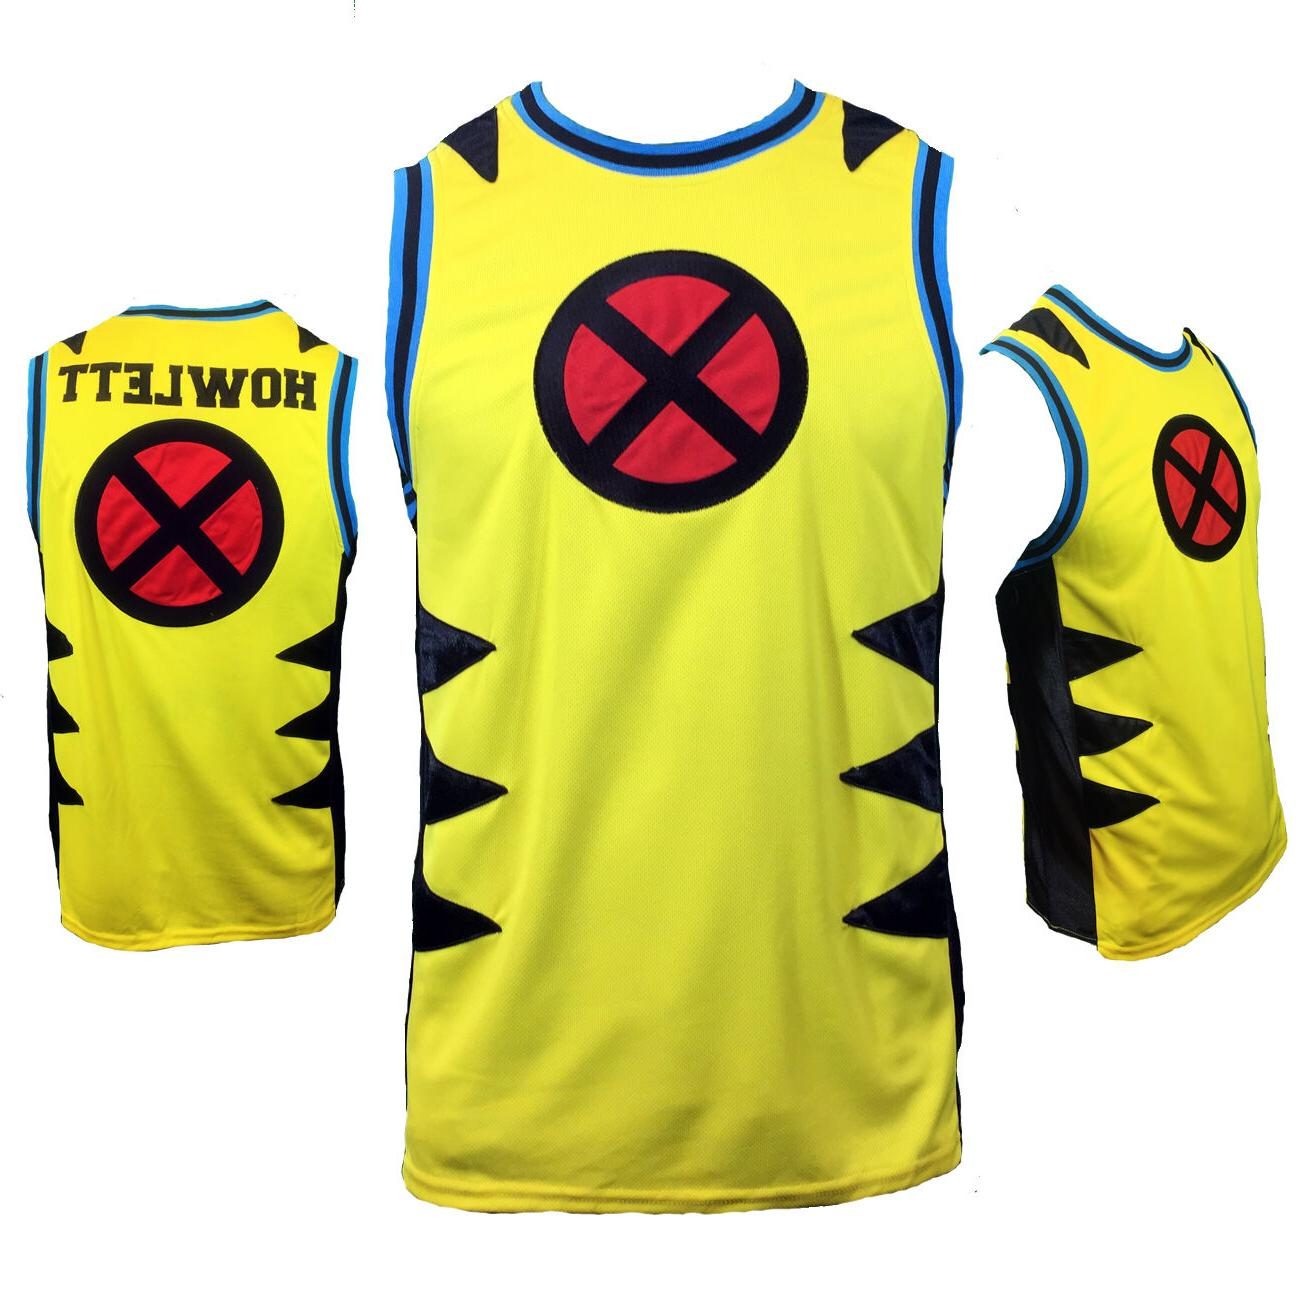 mens basketball jersey tank wolverine x men